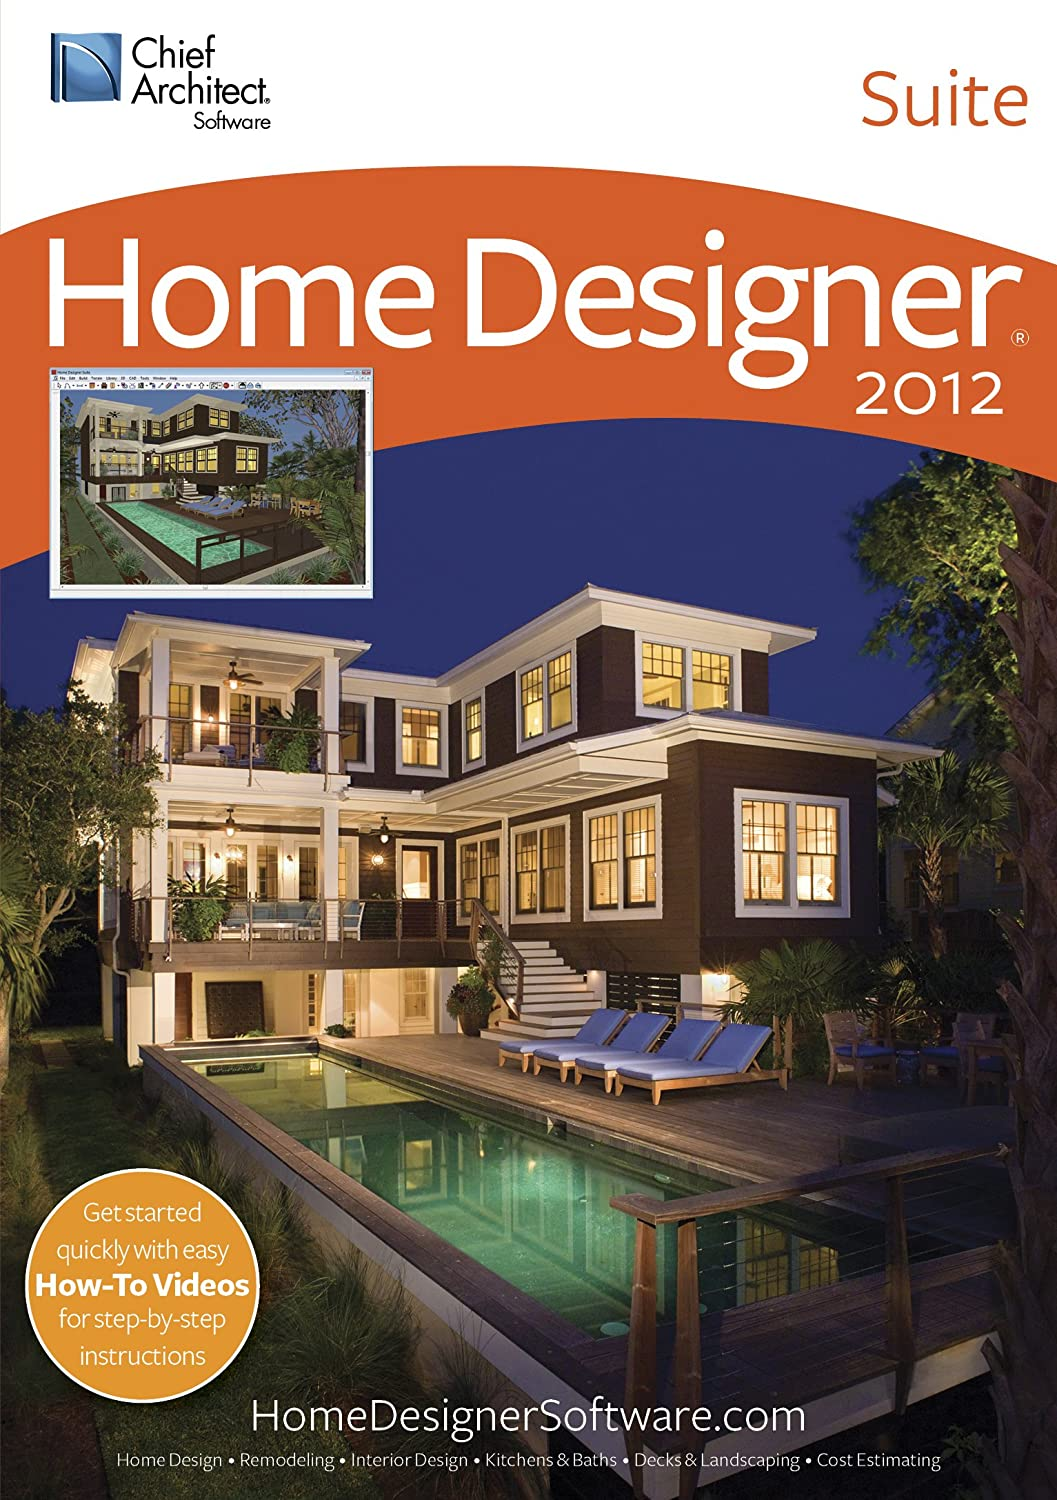 Amazoncom Home Designer Suite 2012 Download Software